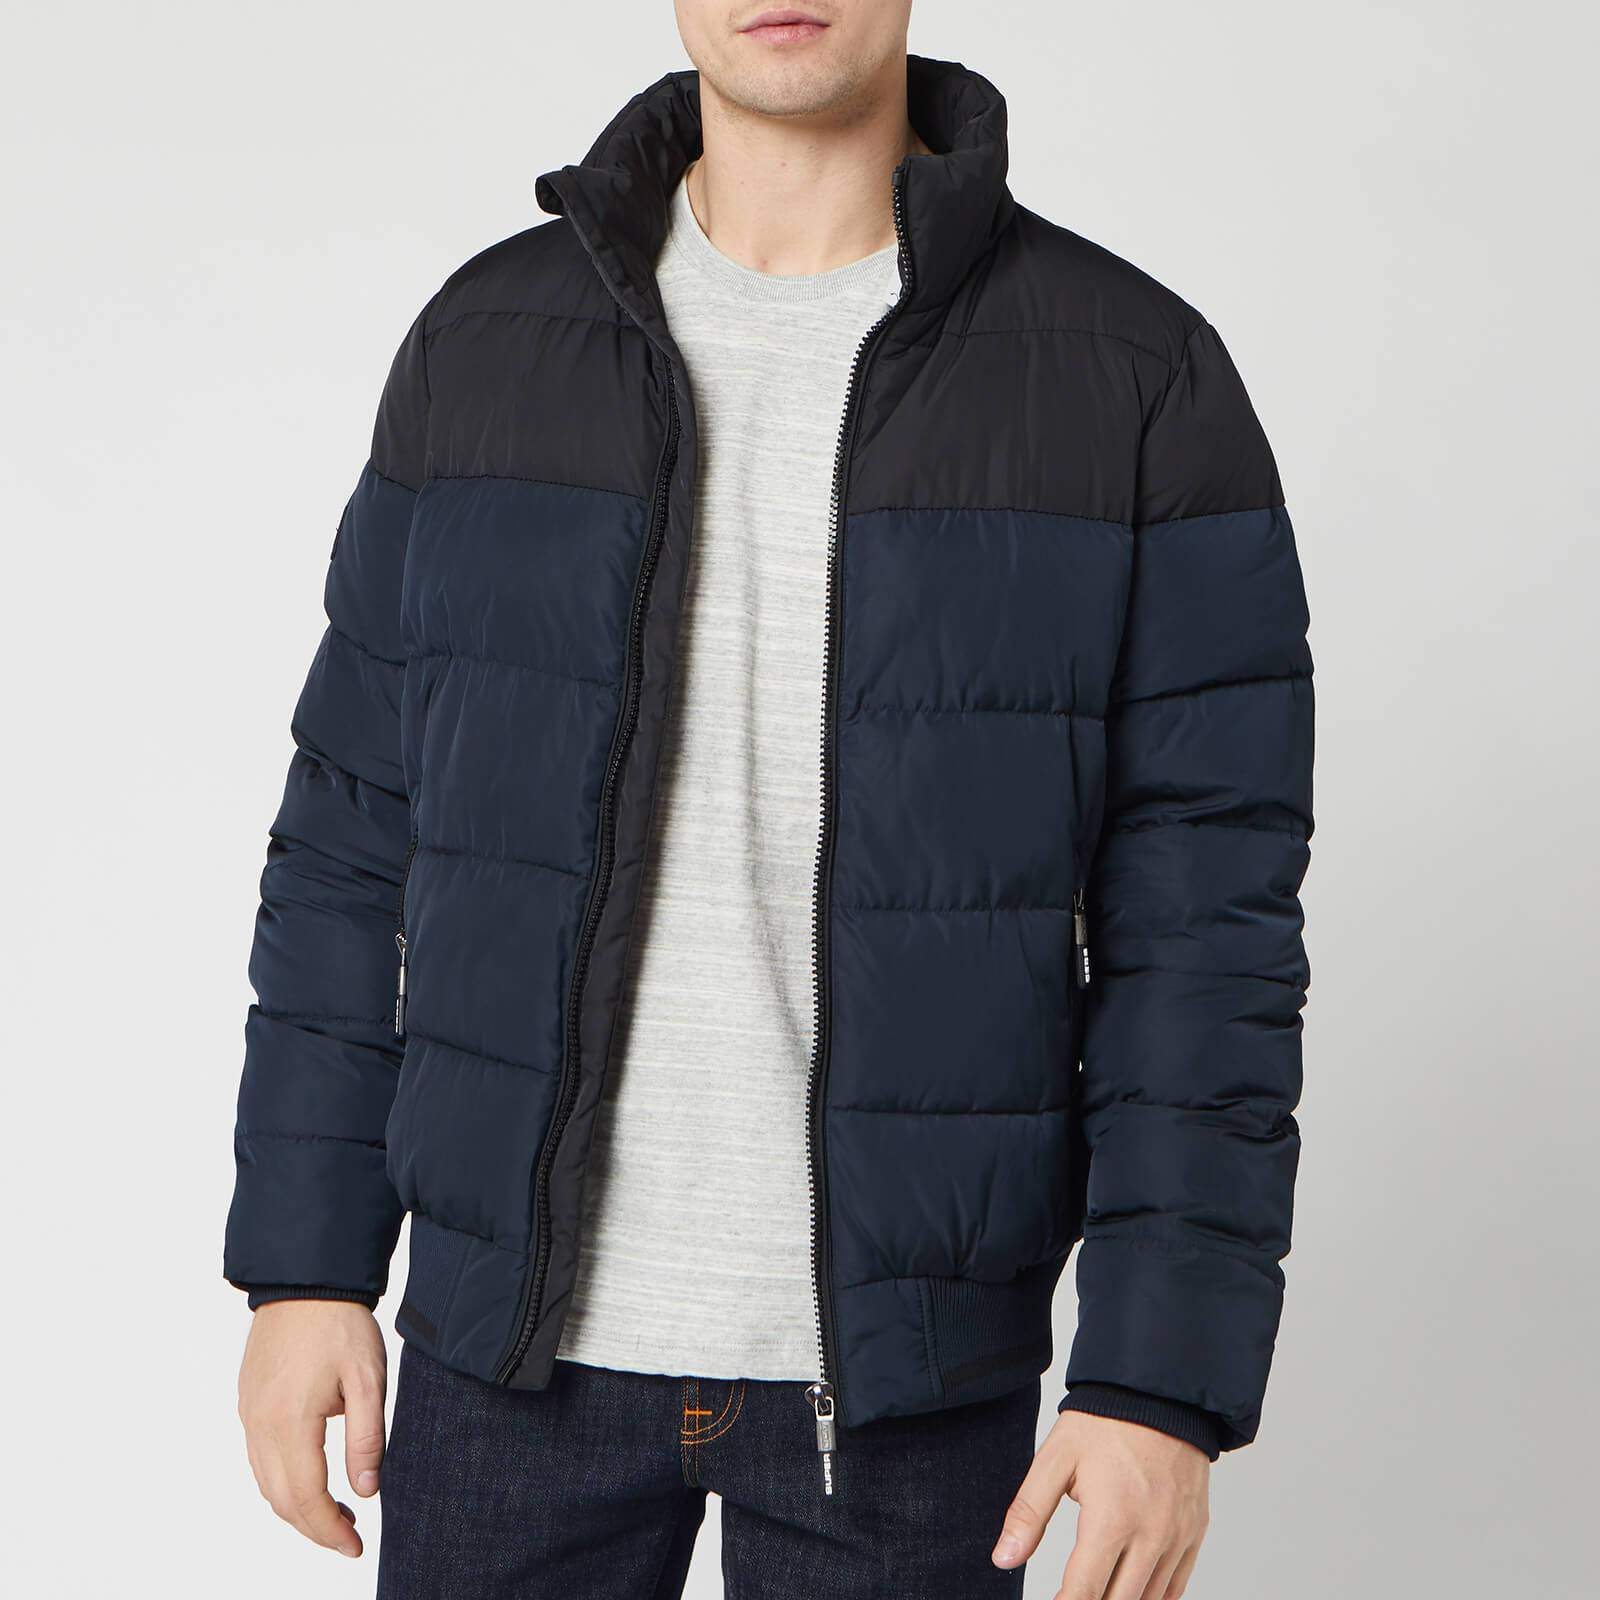 Superdry Men's Track Sports Puffer Jacket - Eclipse Navy - M